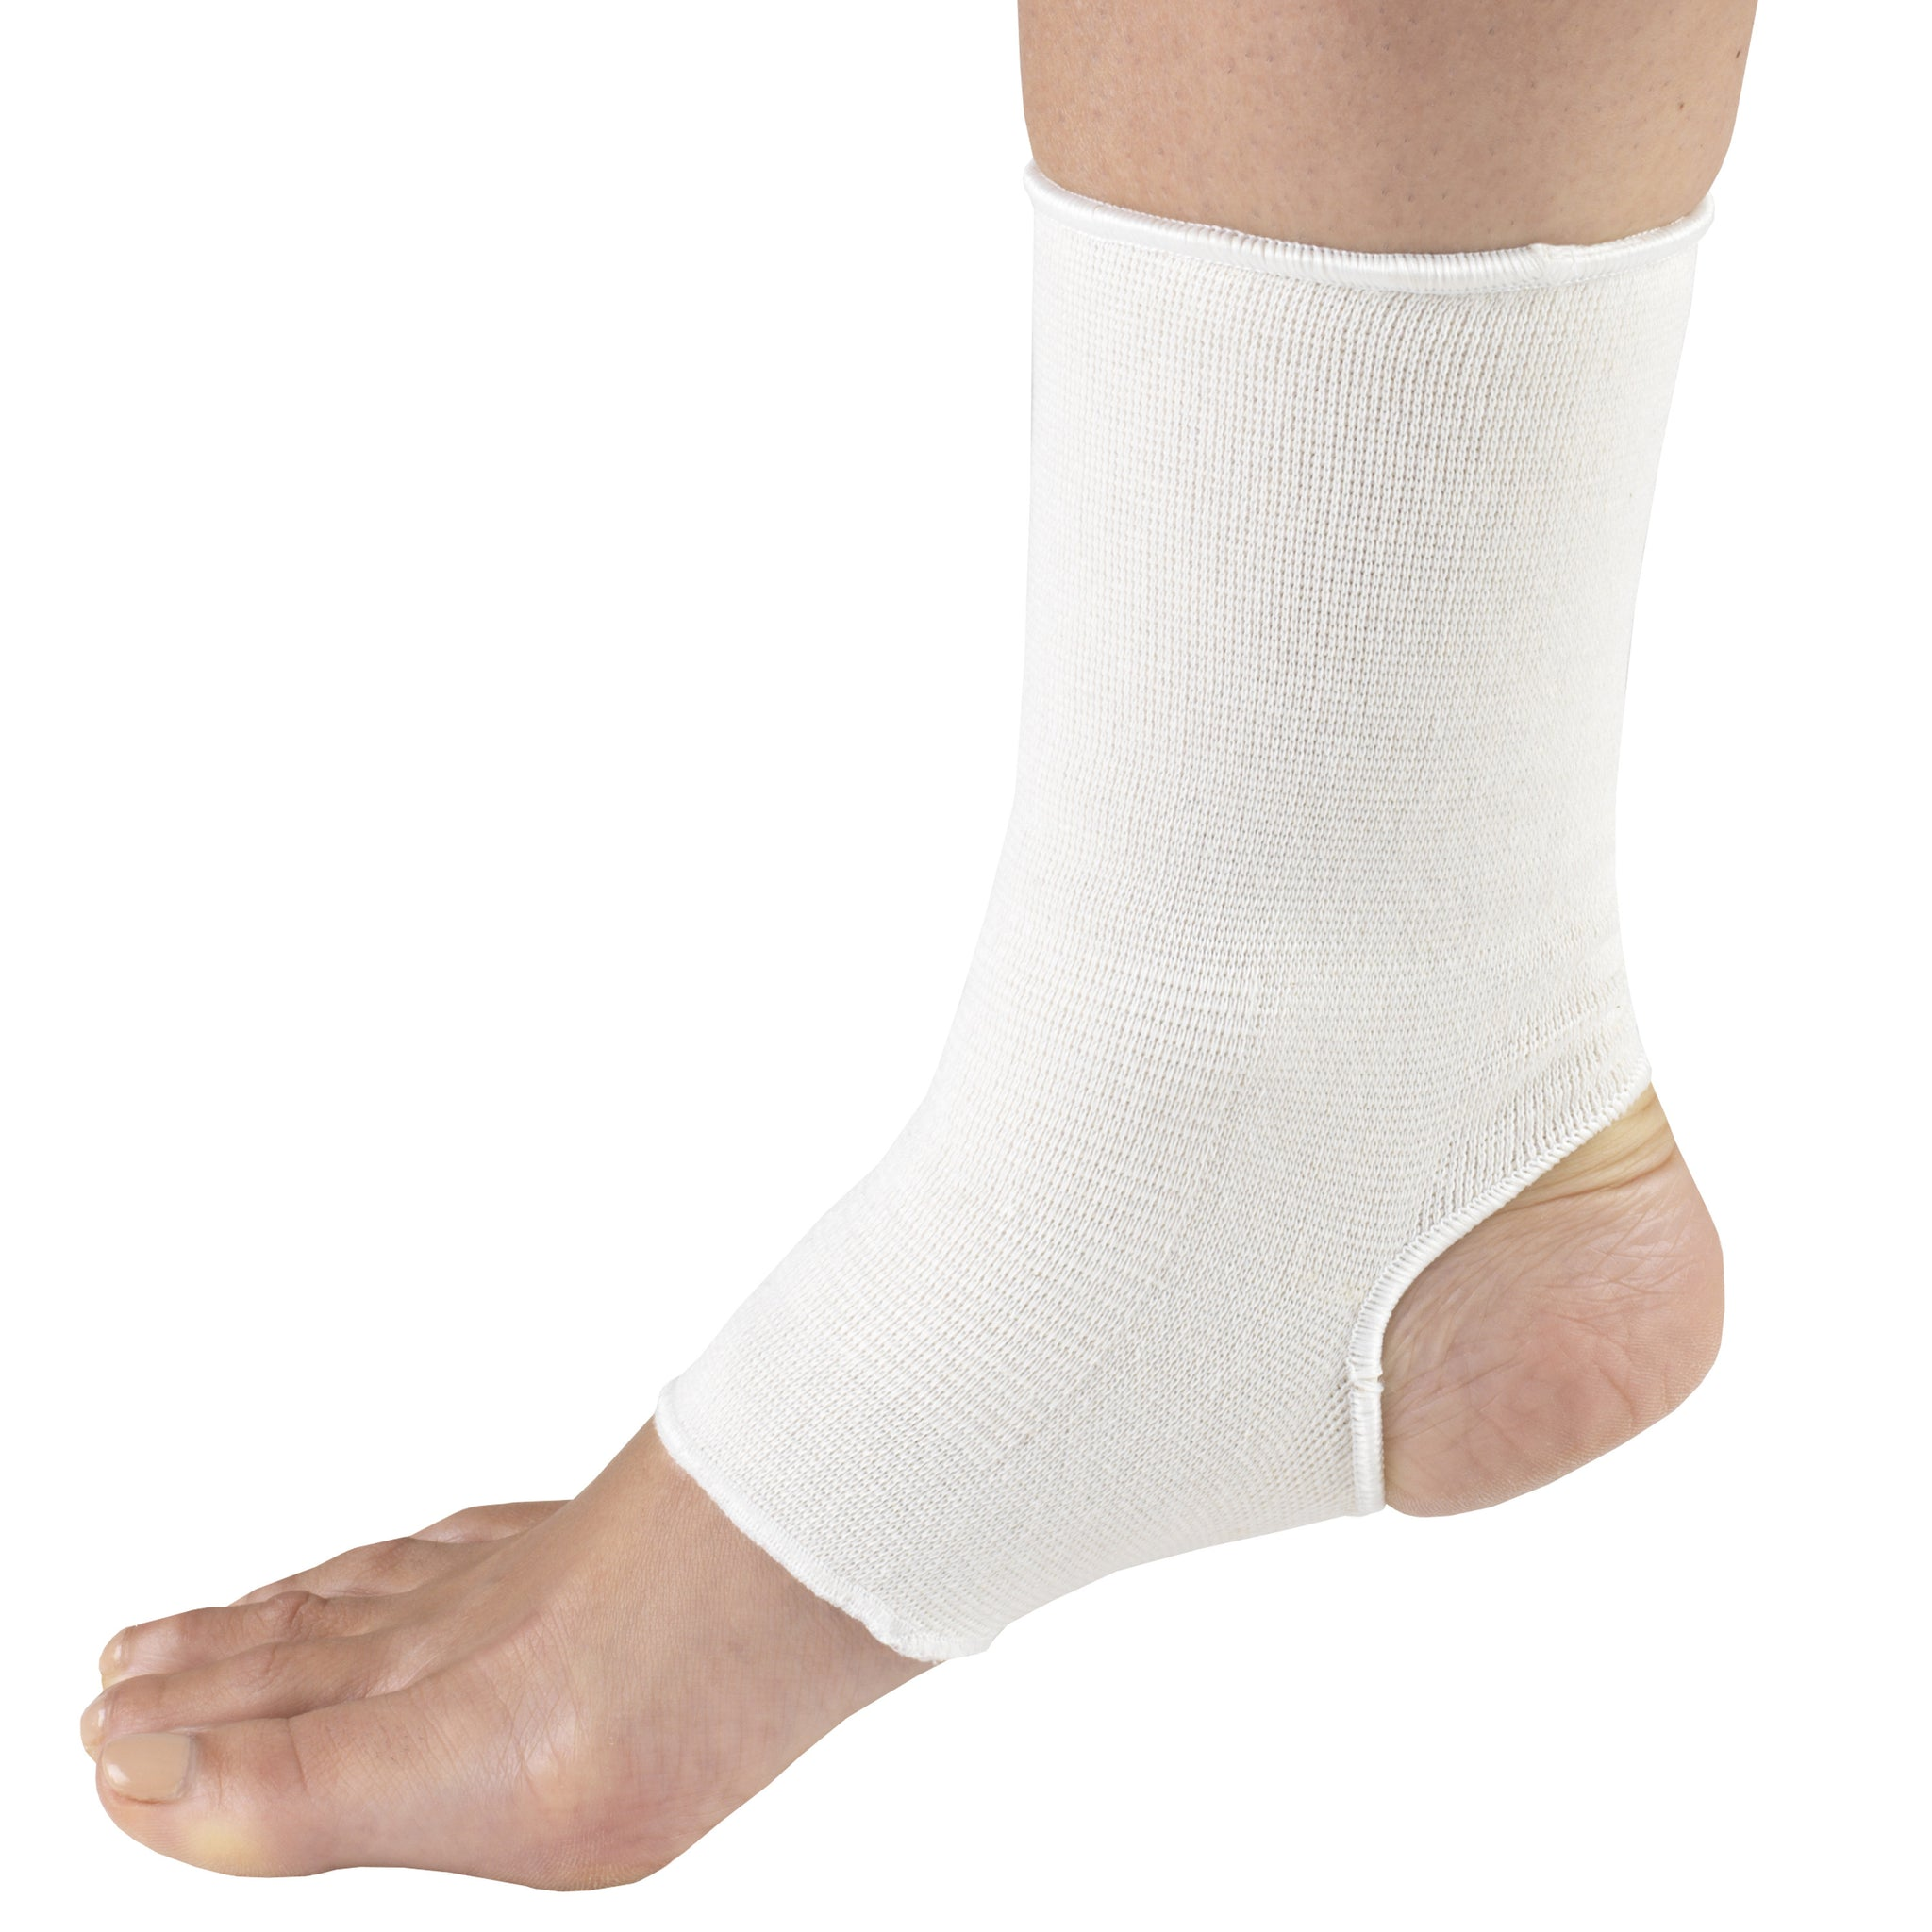 --Side of PULLOVER ELASTIC ANKLE SUPPORT--